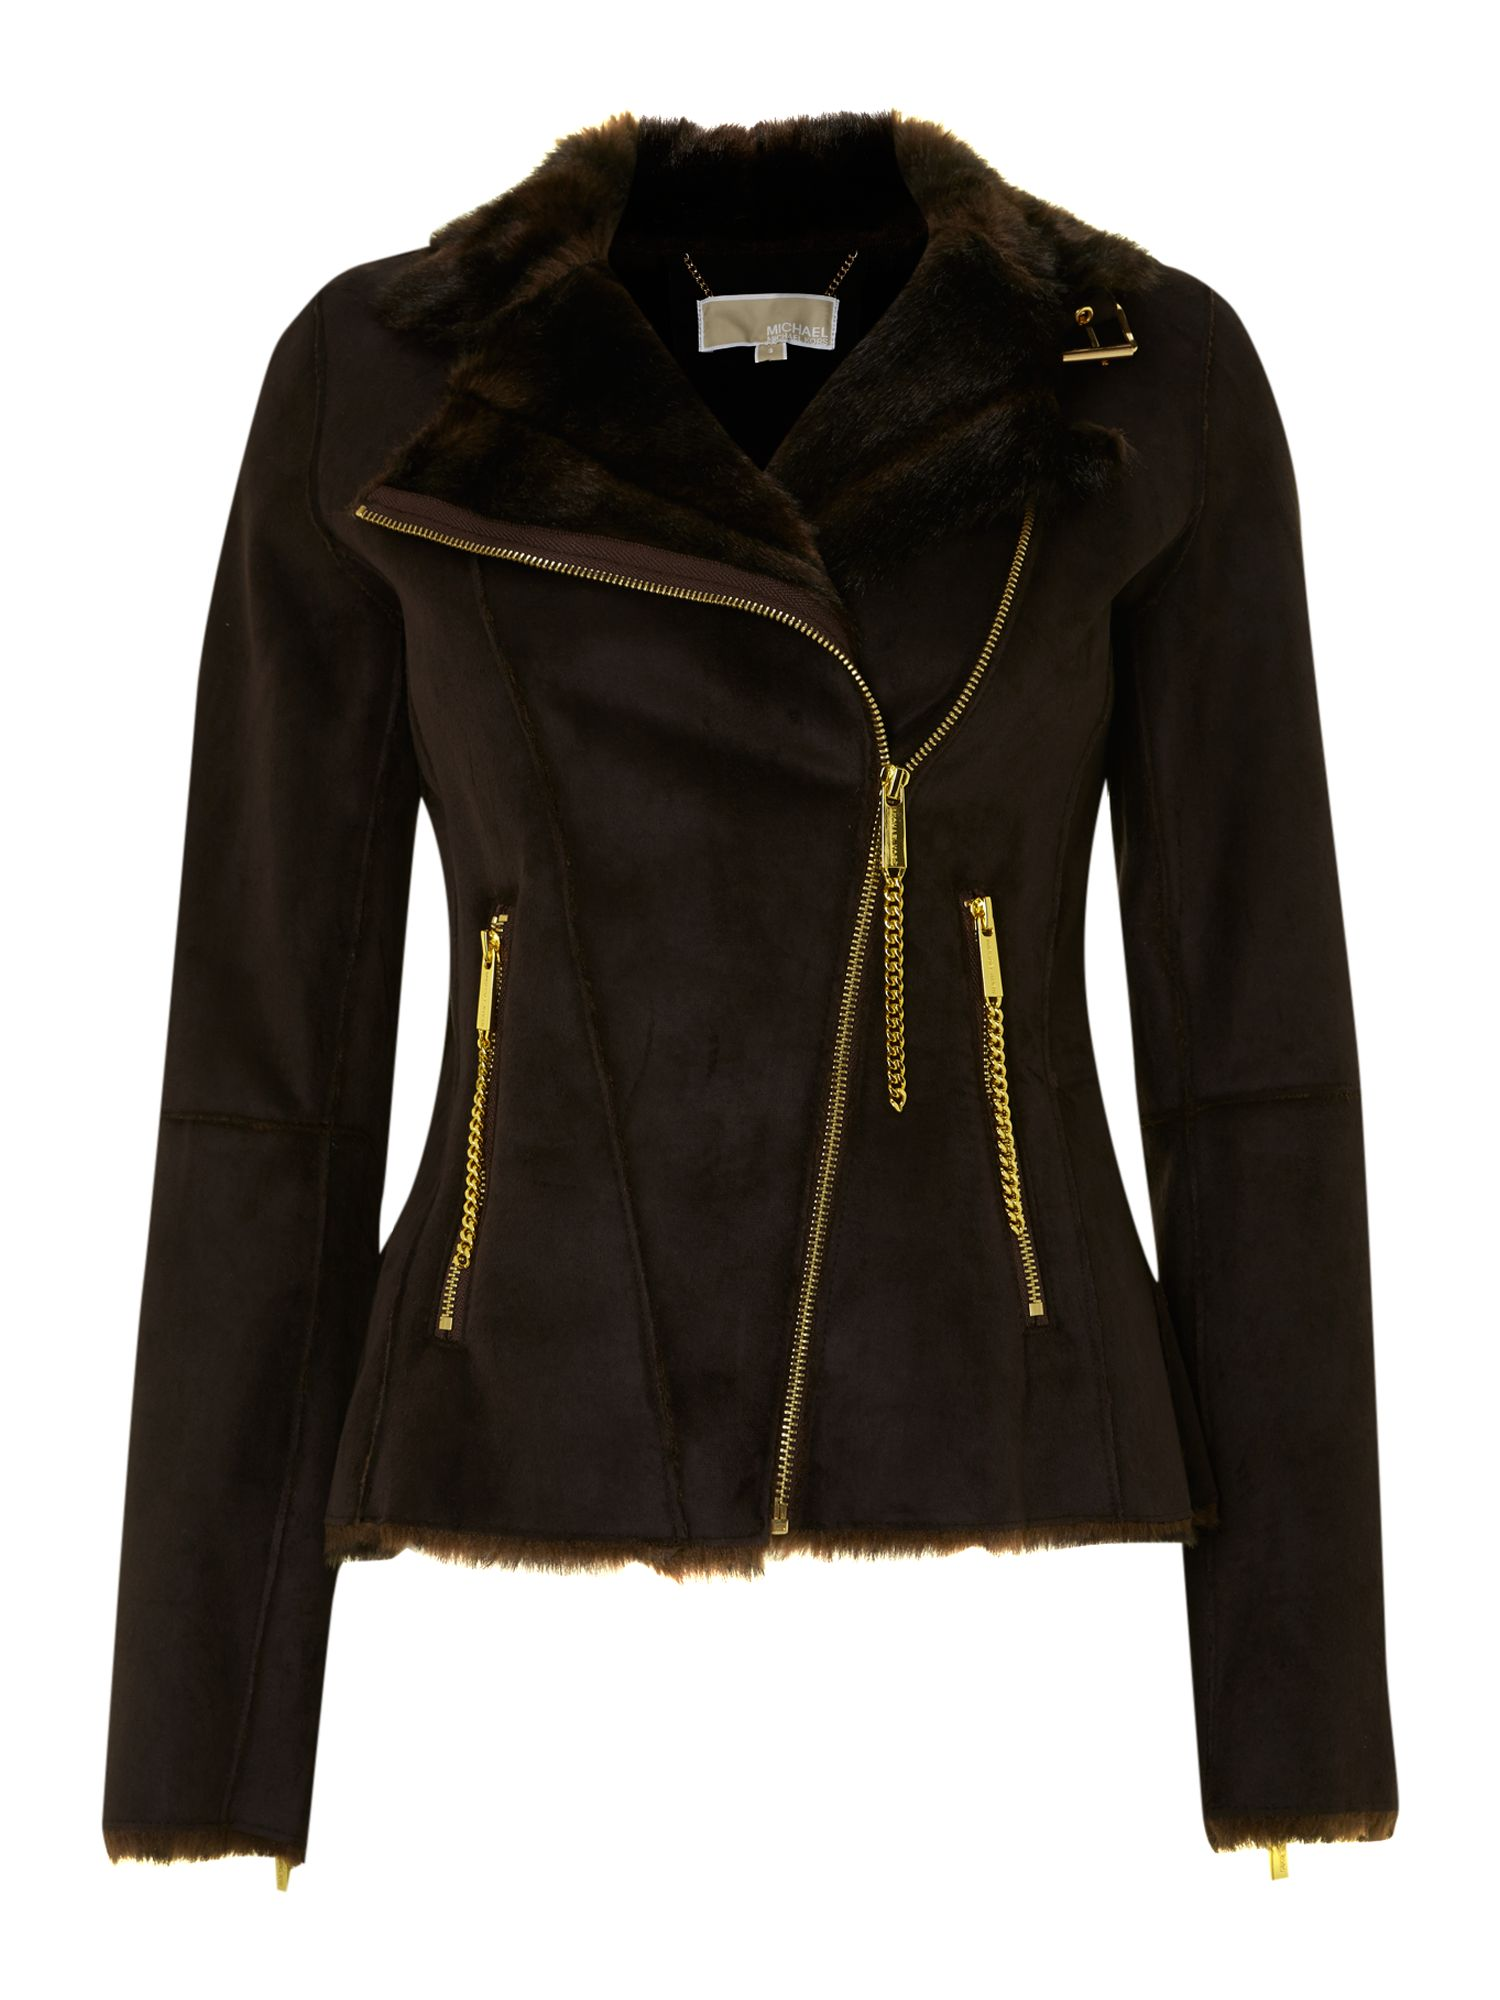 Zip up shearling jacket